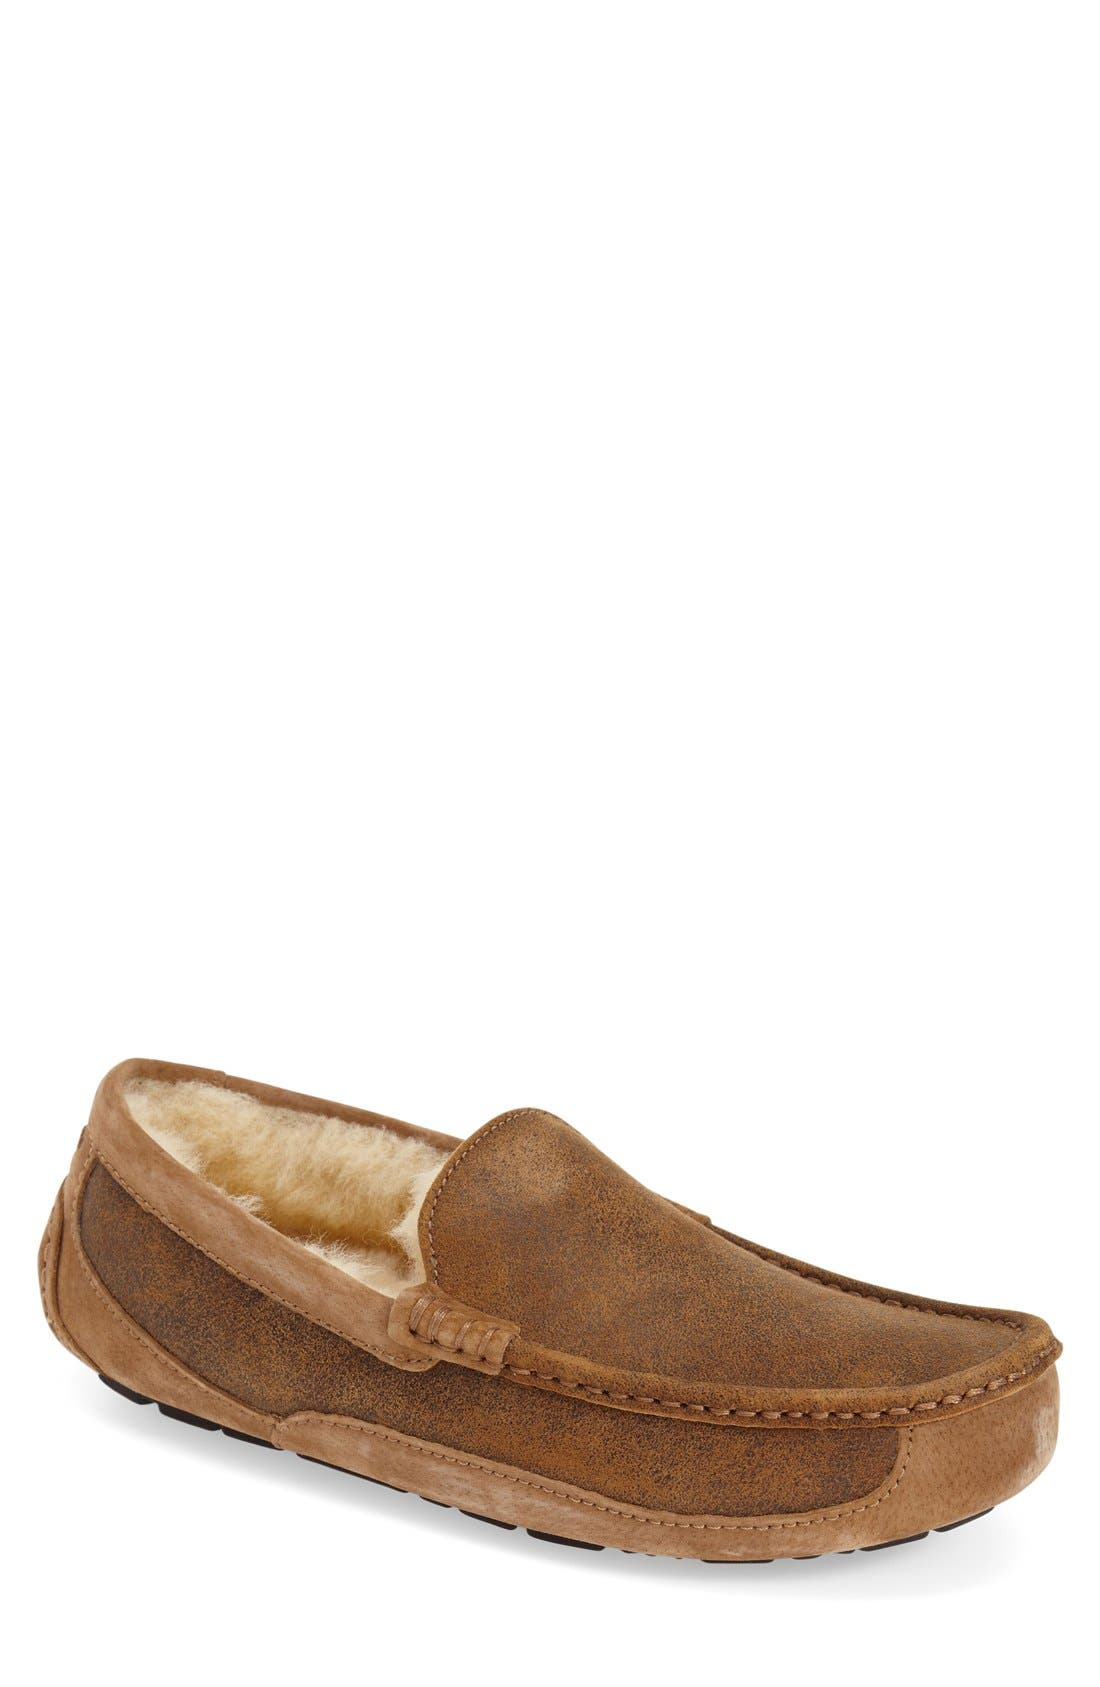 Ascot Bomber Slipper,                             Main thumbnail 1, color,                             Bomber Jacket Chestnut